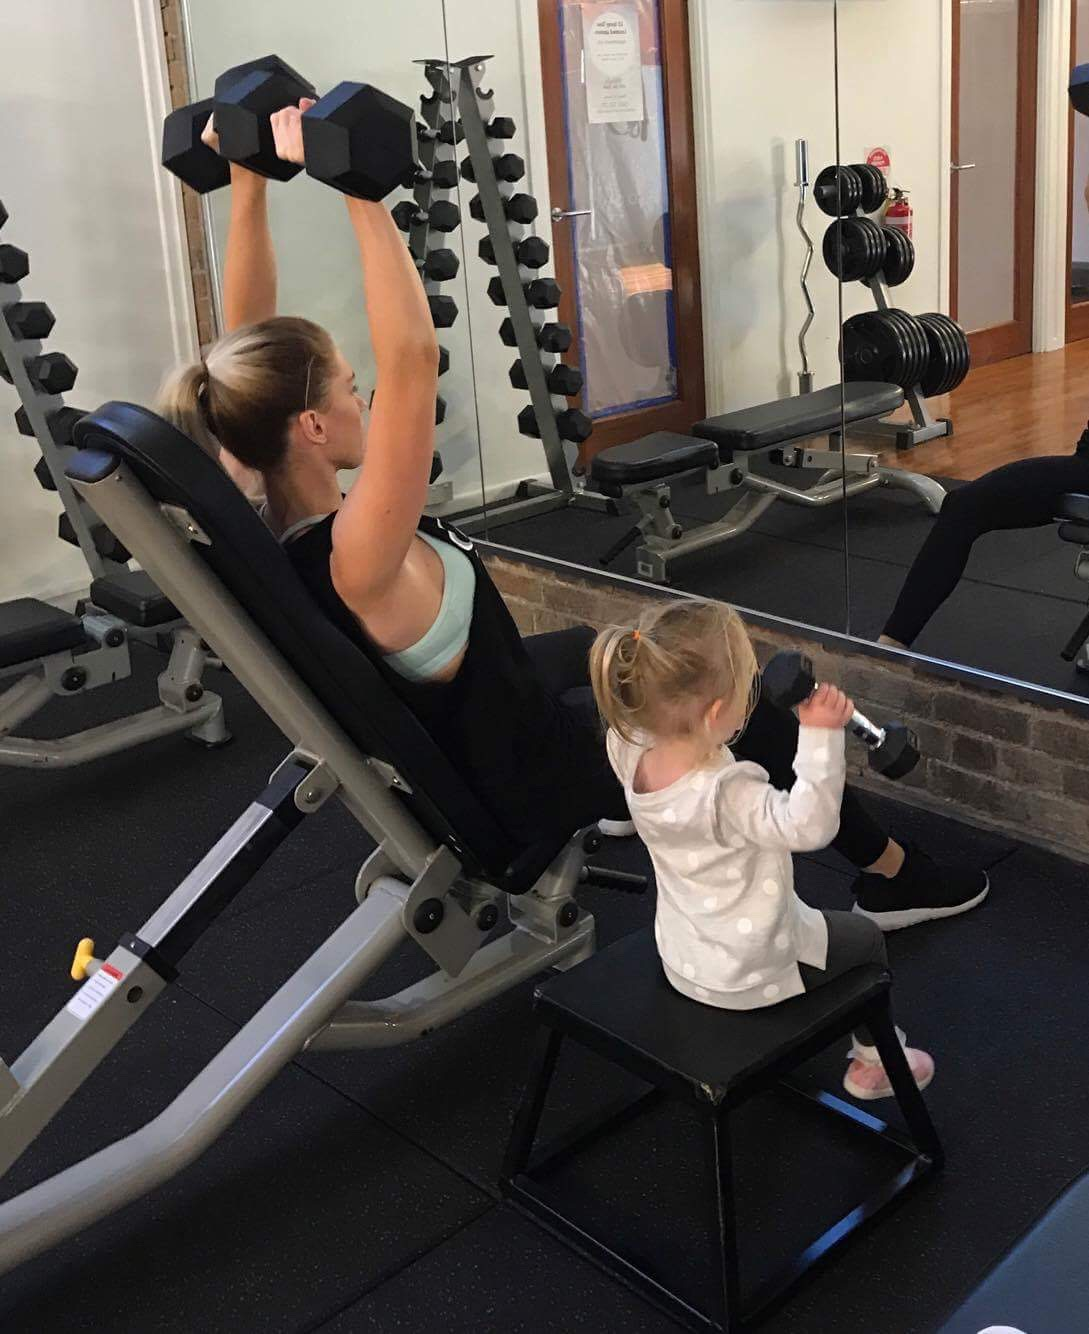 Lose weight, tone up or get fit. We even have a kids room.